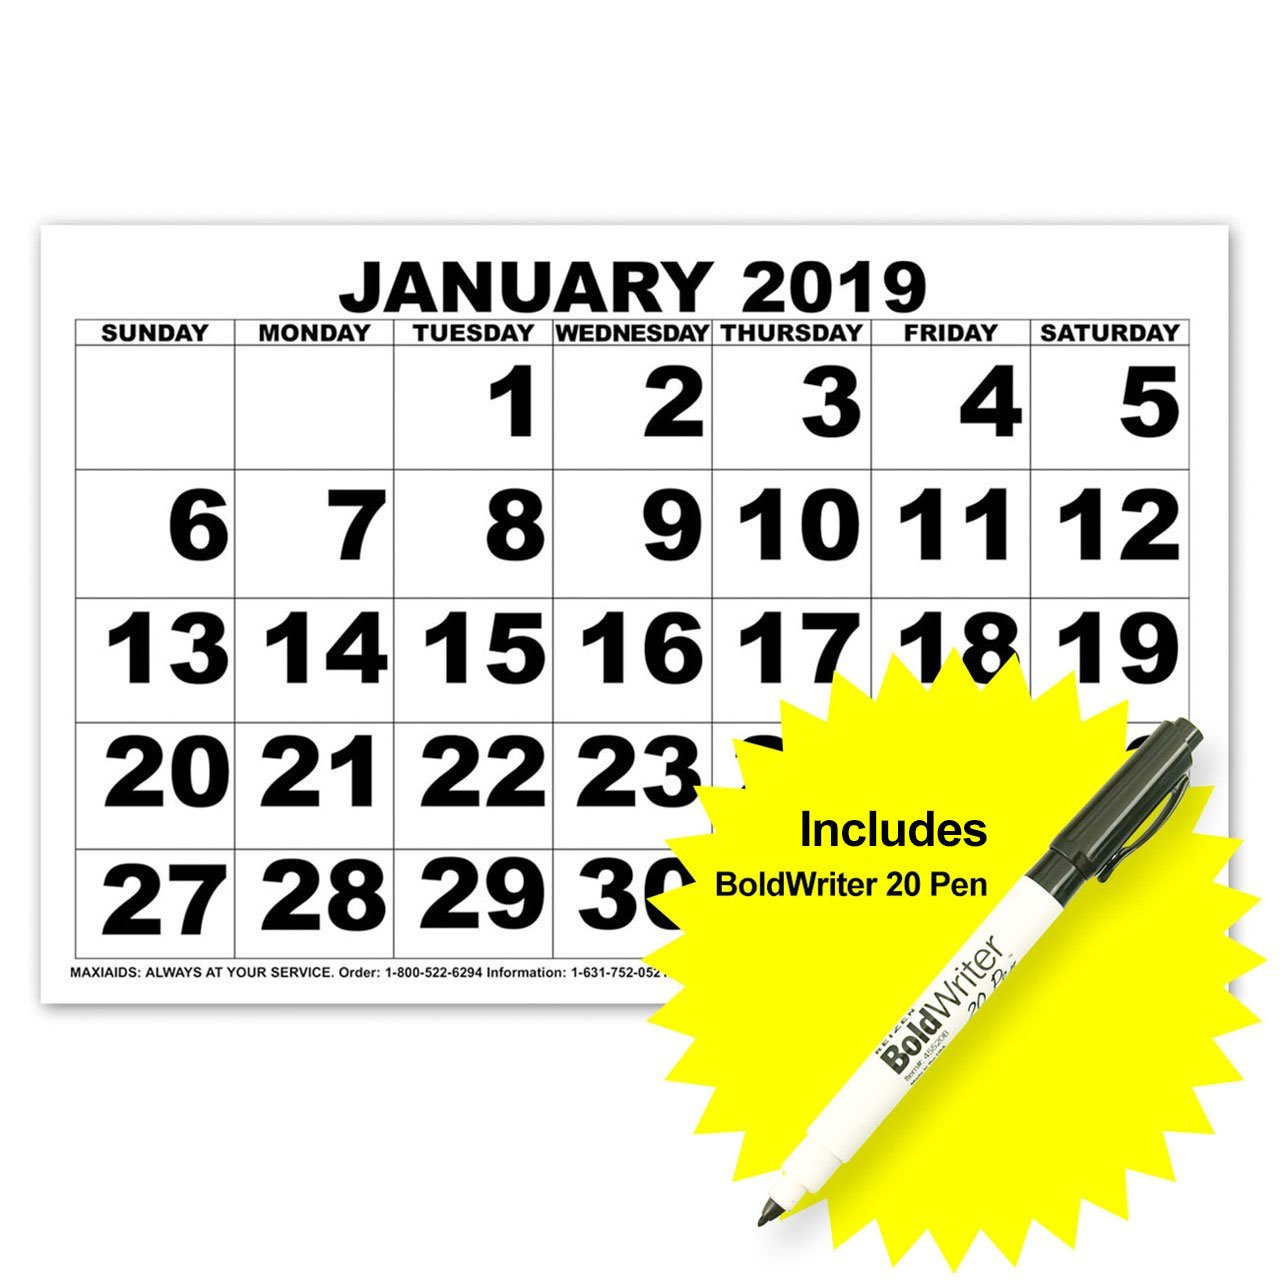 Maxiaids | Low Vision Print Calendar - 2019 With Boldwriter 20 Pen Zeiss Calendar 2019